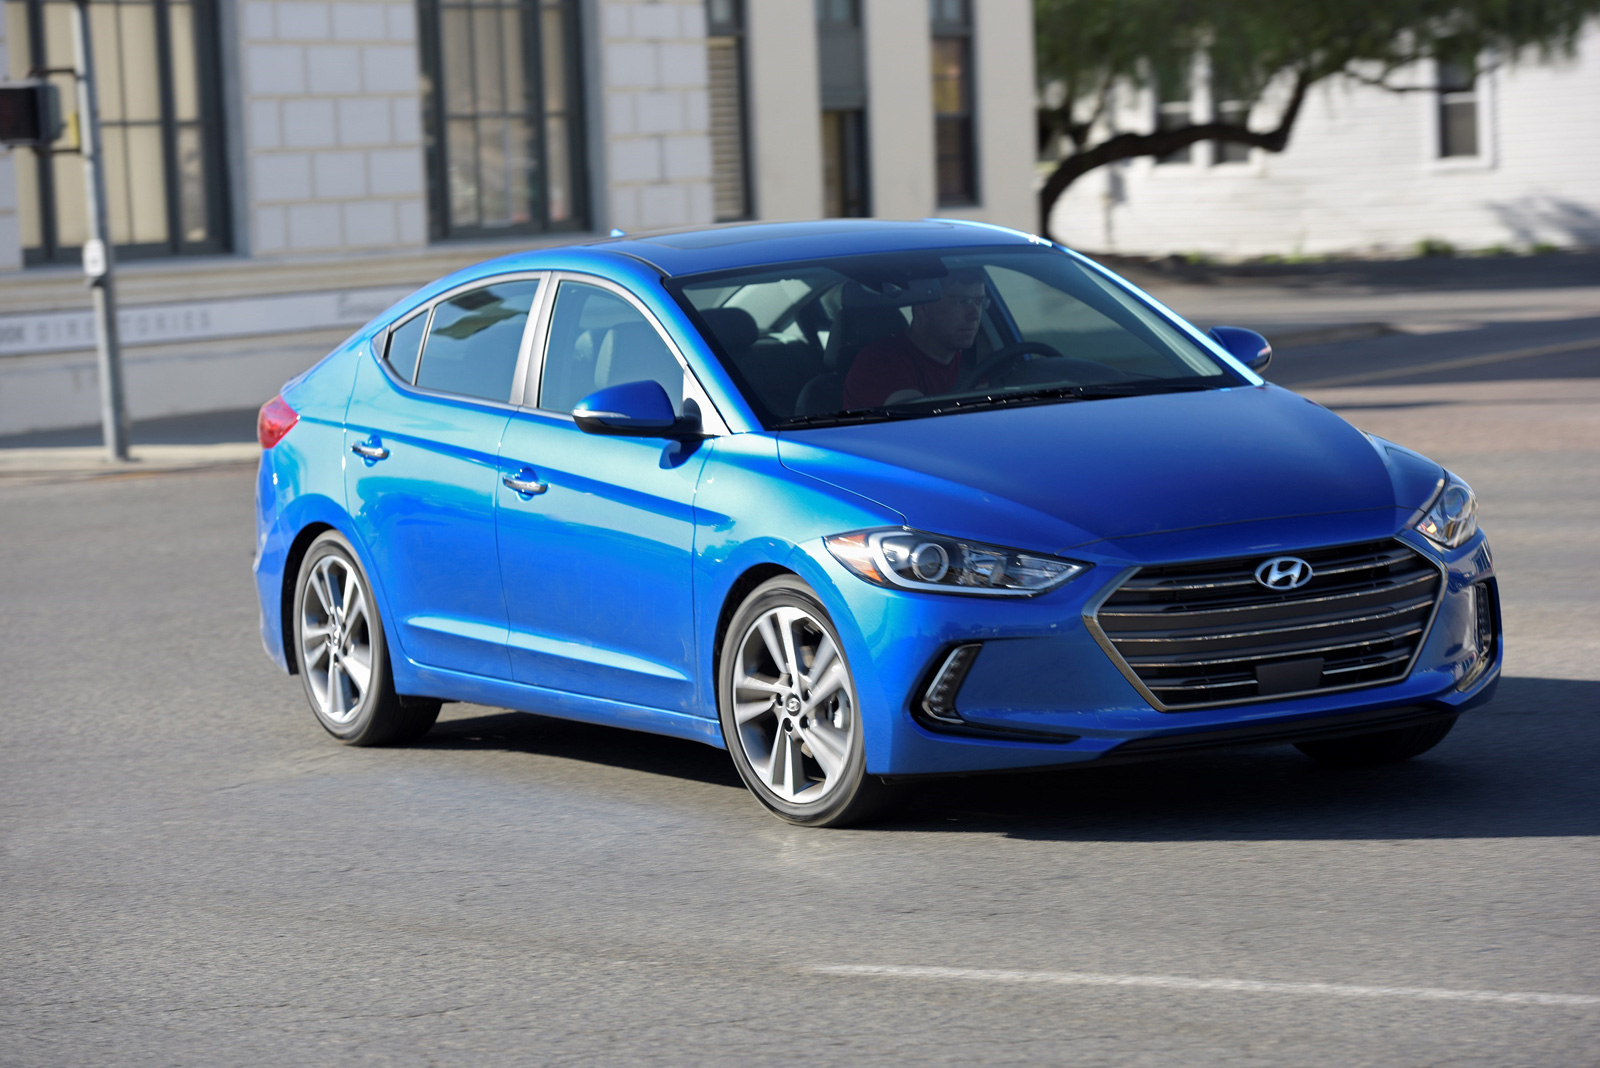 2018 hyundai elantra sedan. Fine Sedan 2018 Elantra Sedan With Hyundai Elantra Sedan F